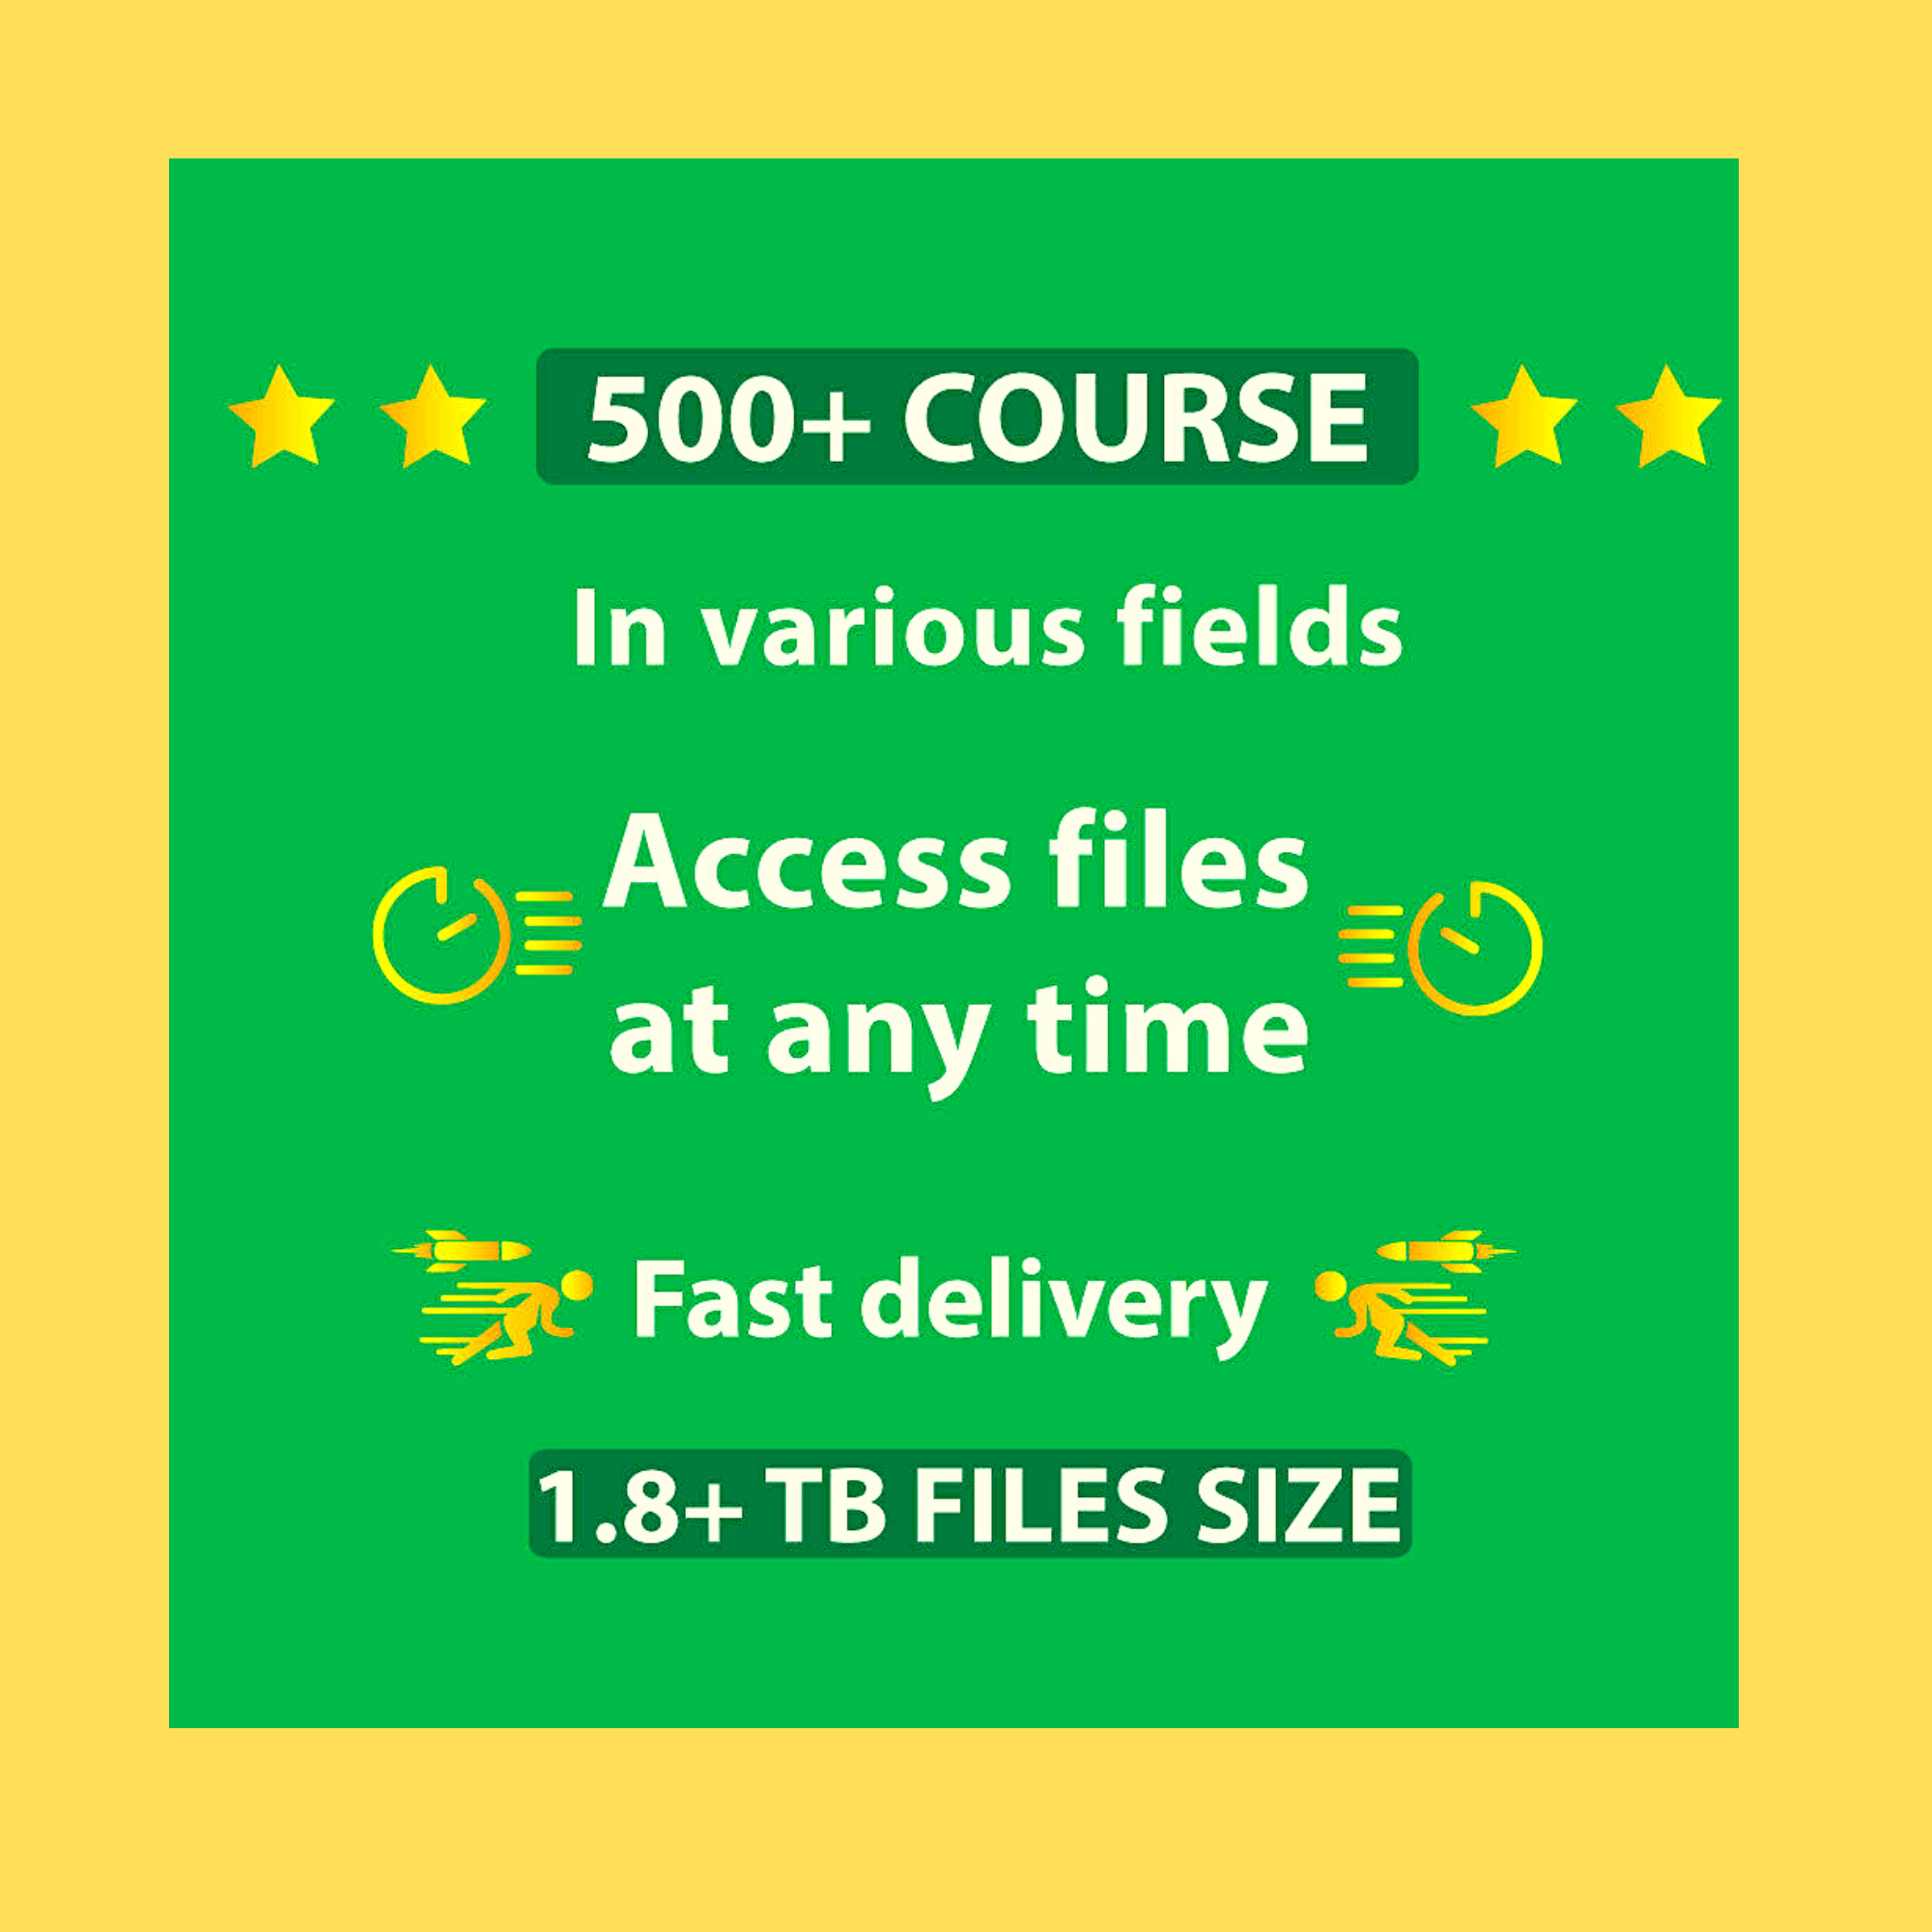 450+ Course Online Collection Perfect To Make Money 1.3 TB